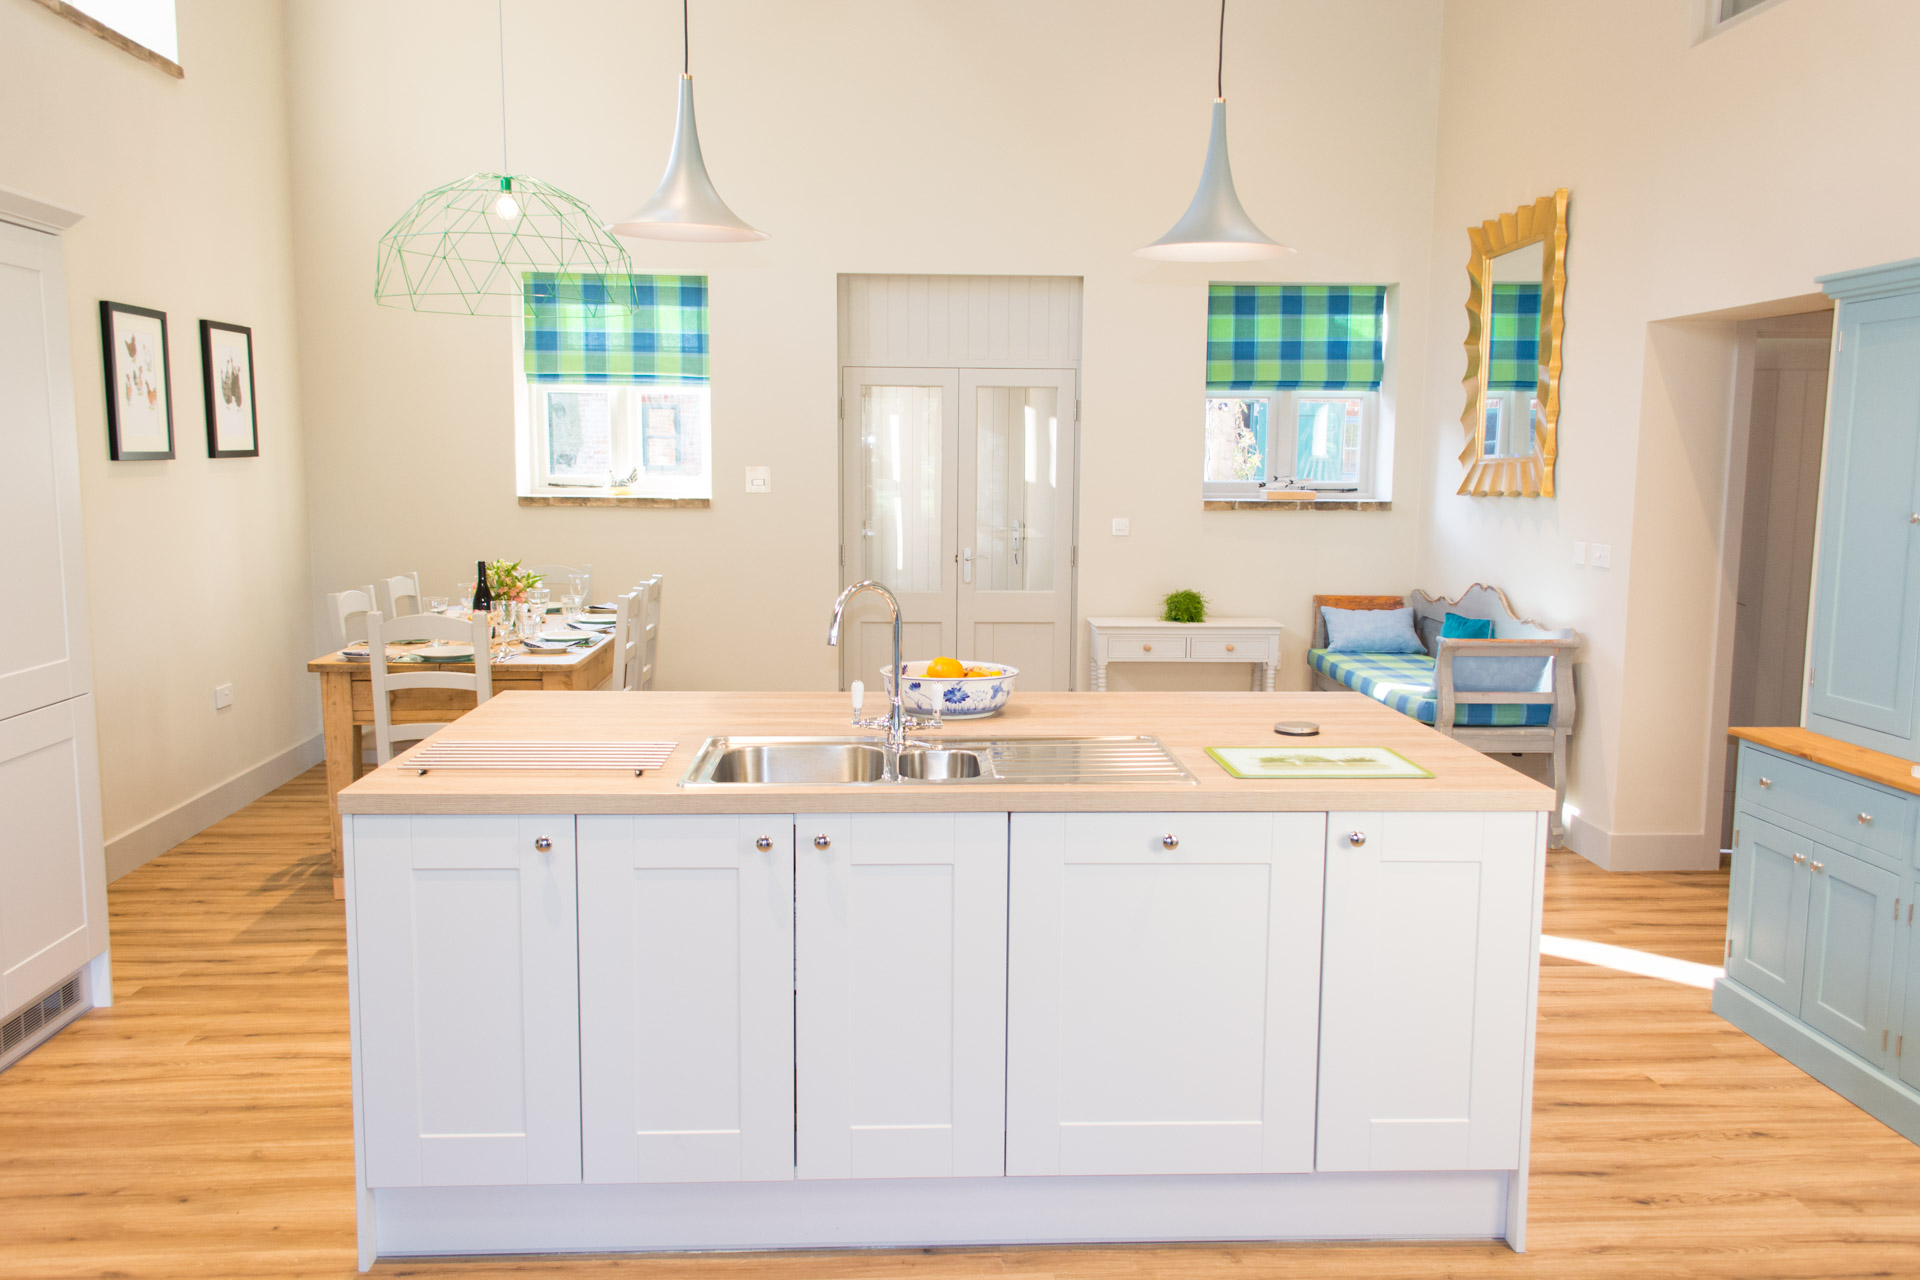 The kitchen island and front entrance to Boathouse Barn